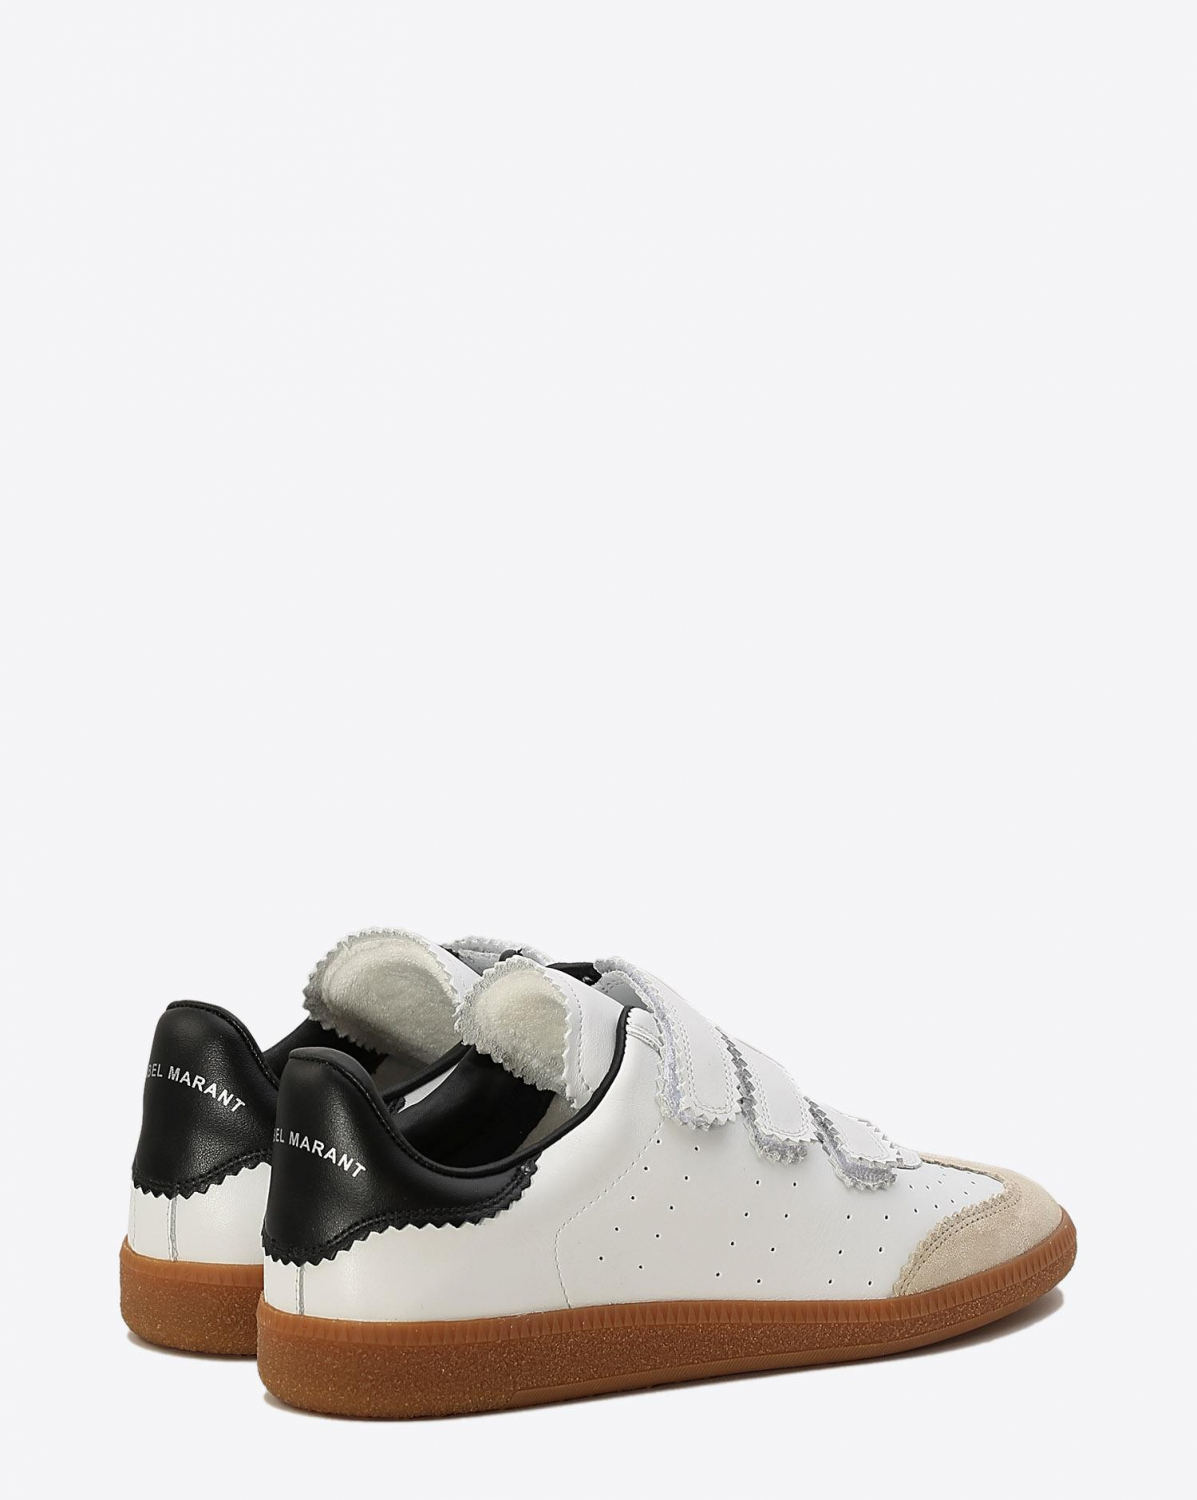 Isabel Marant Chaussures Sneakers BETH - Vintage White